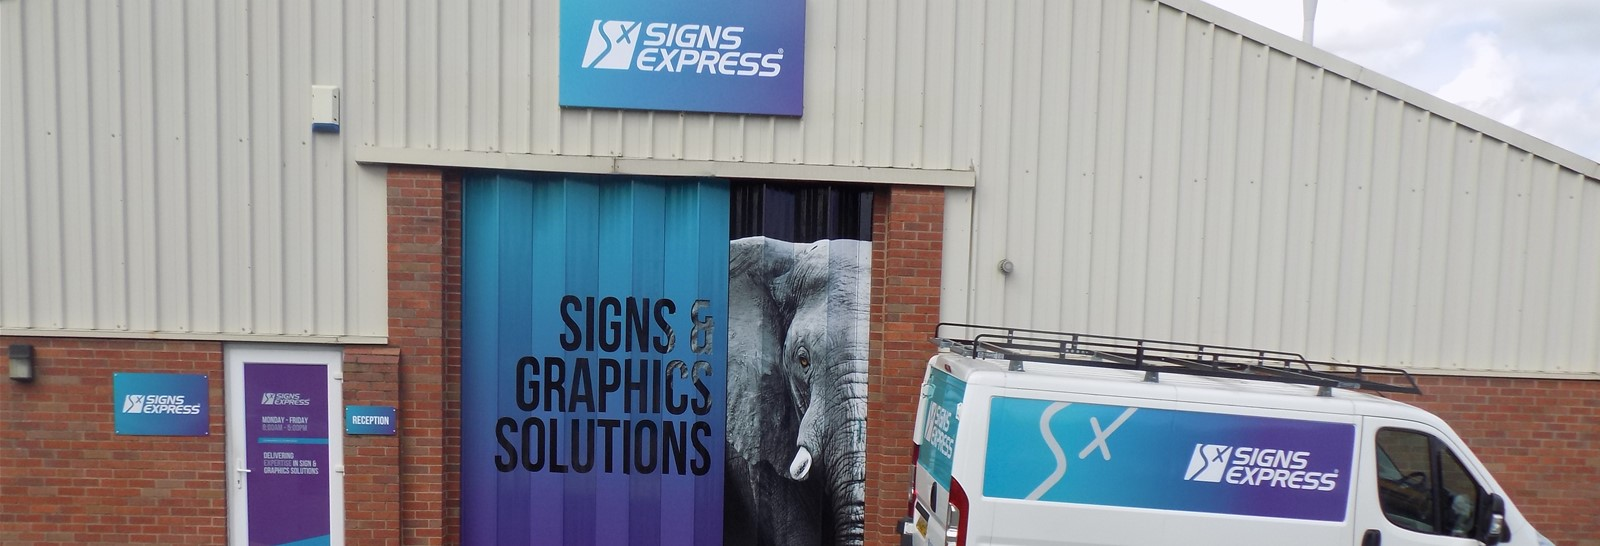 Rebrand at Signs Express Worcester